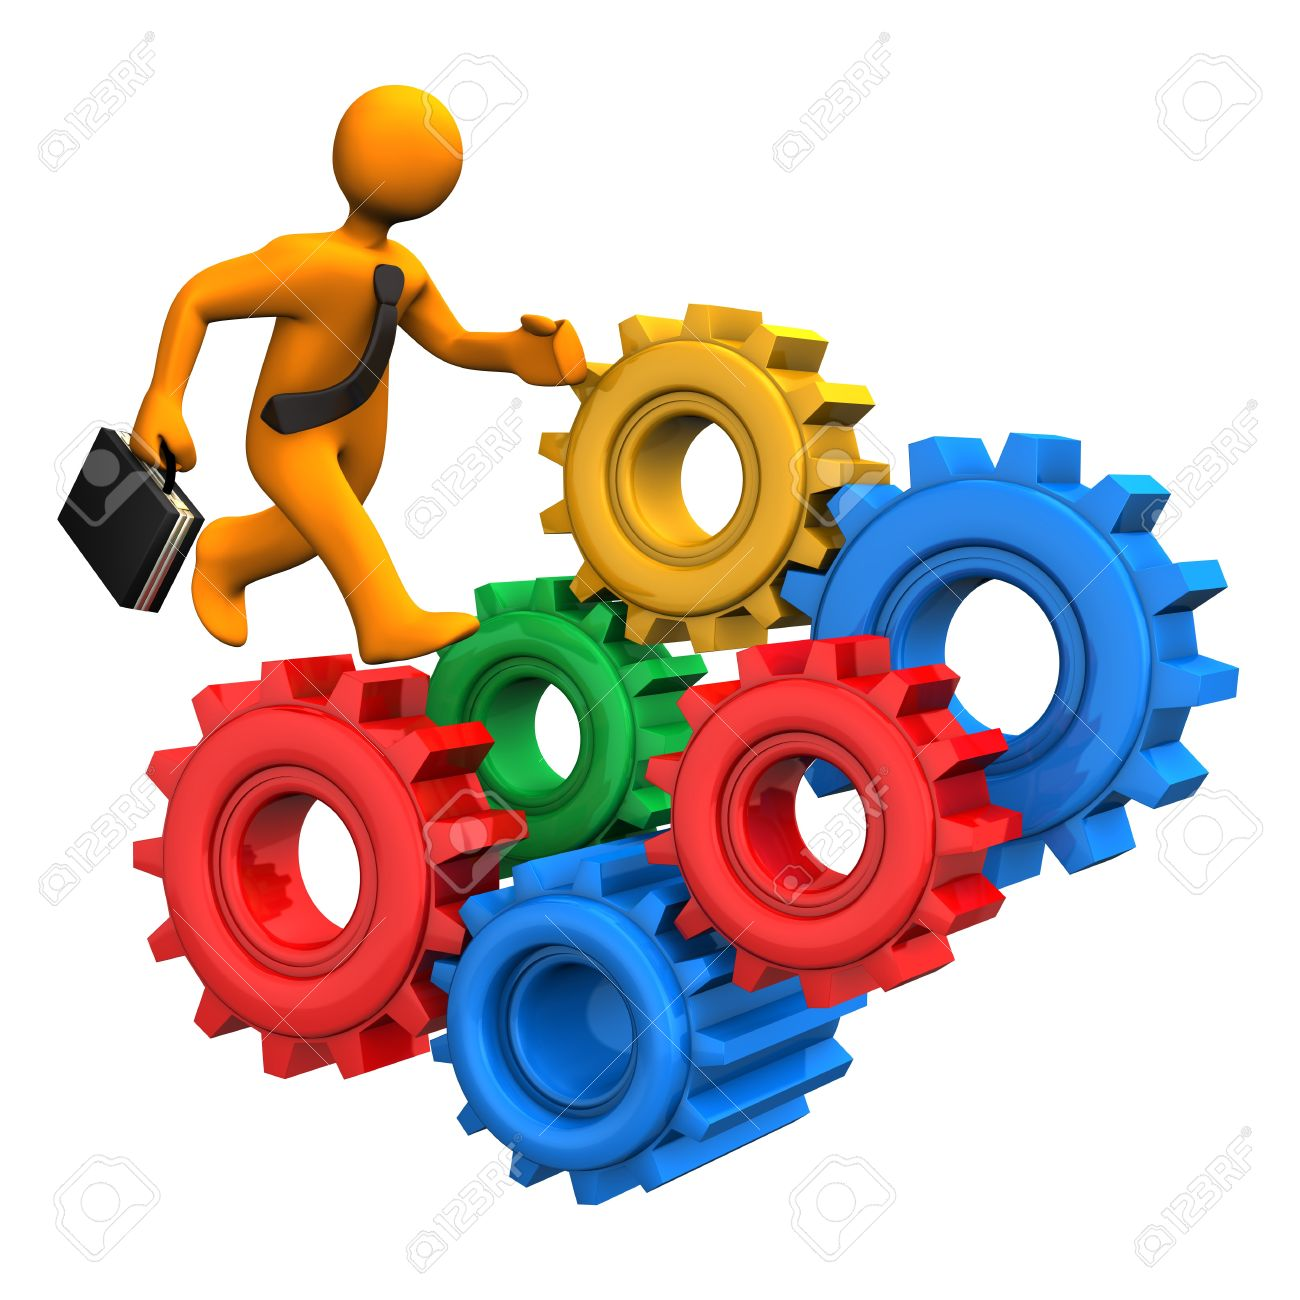 Orange cartoon character runs at the colorful gears. Stock Photo - 17460608